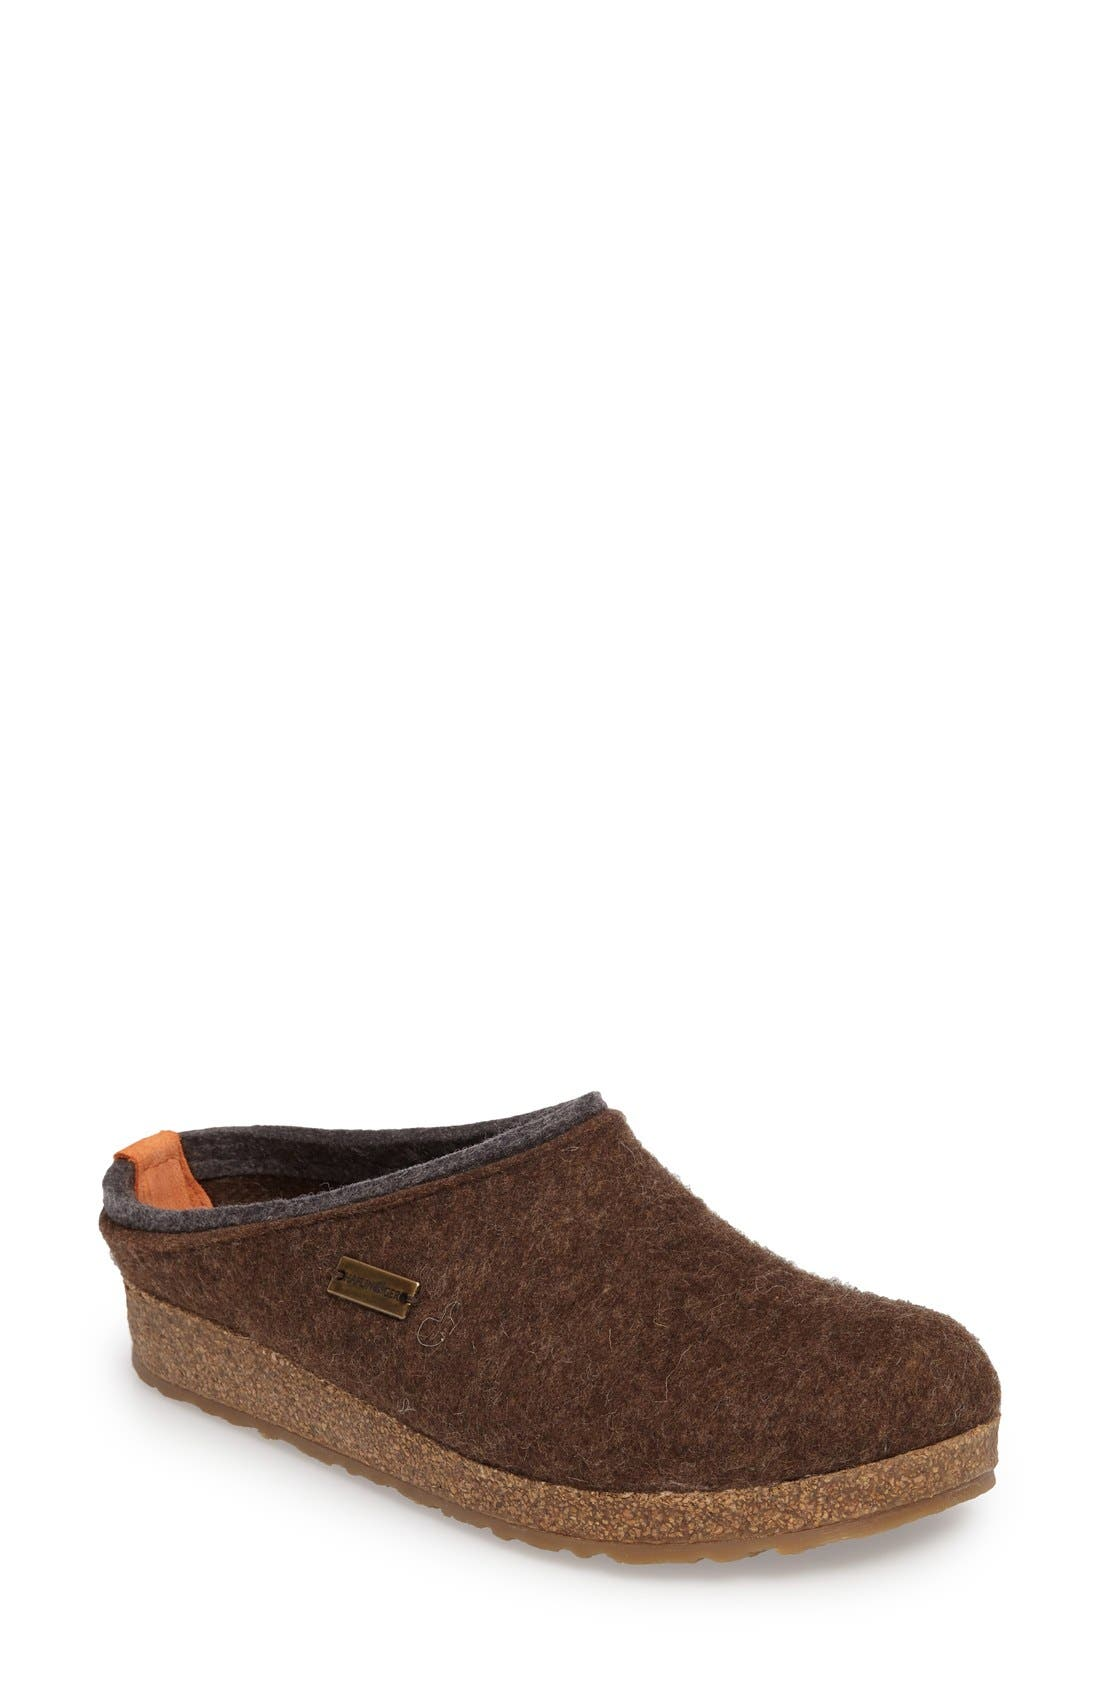 Kris Slipper,                         Main,                         color, Chocolate Wool